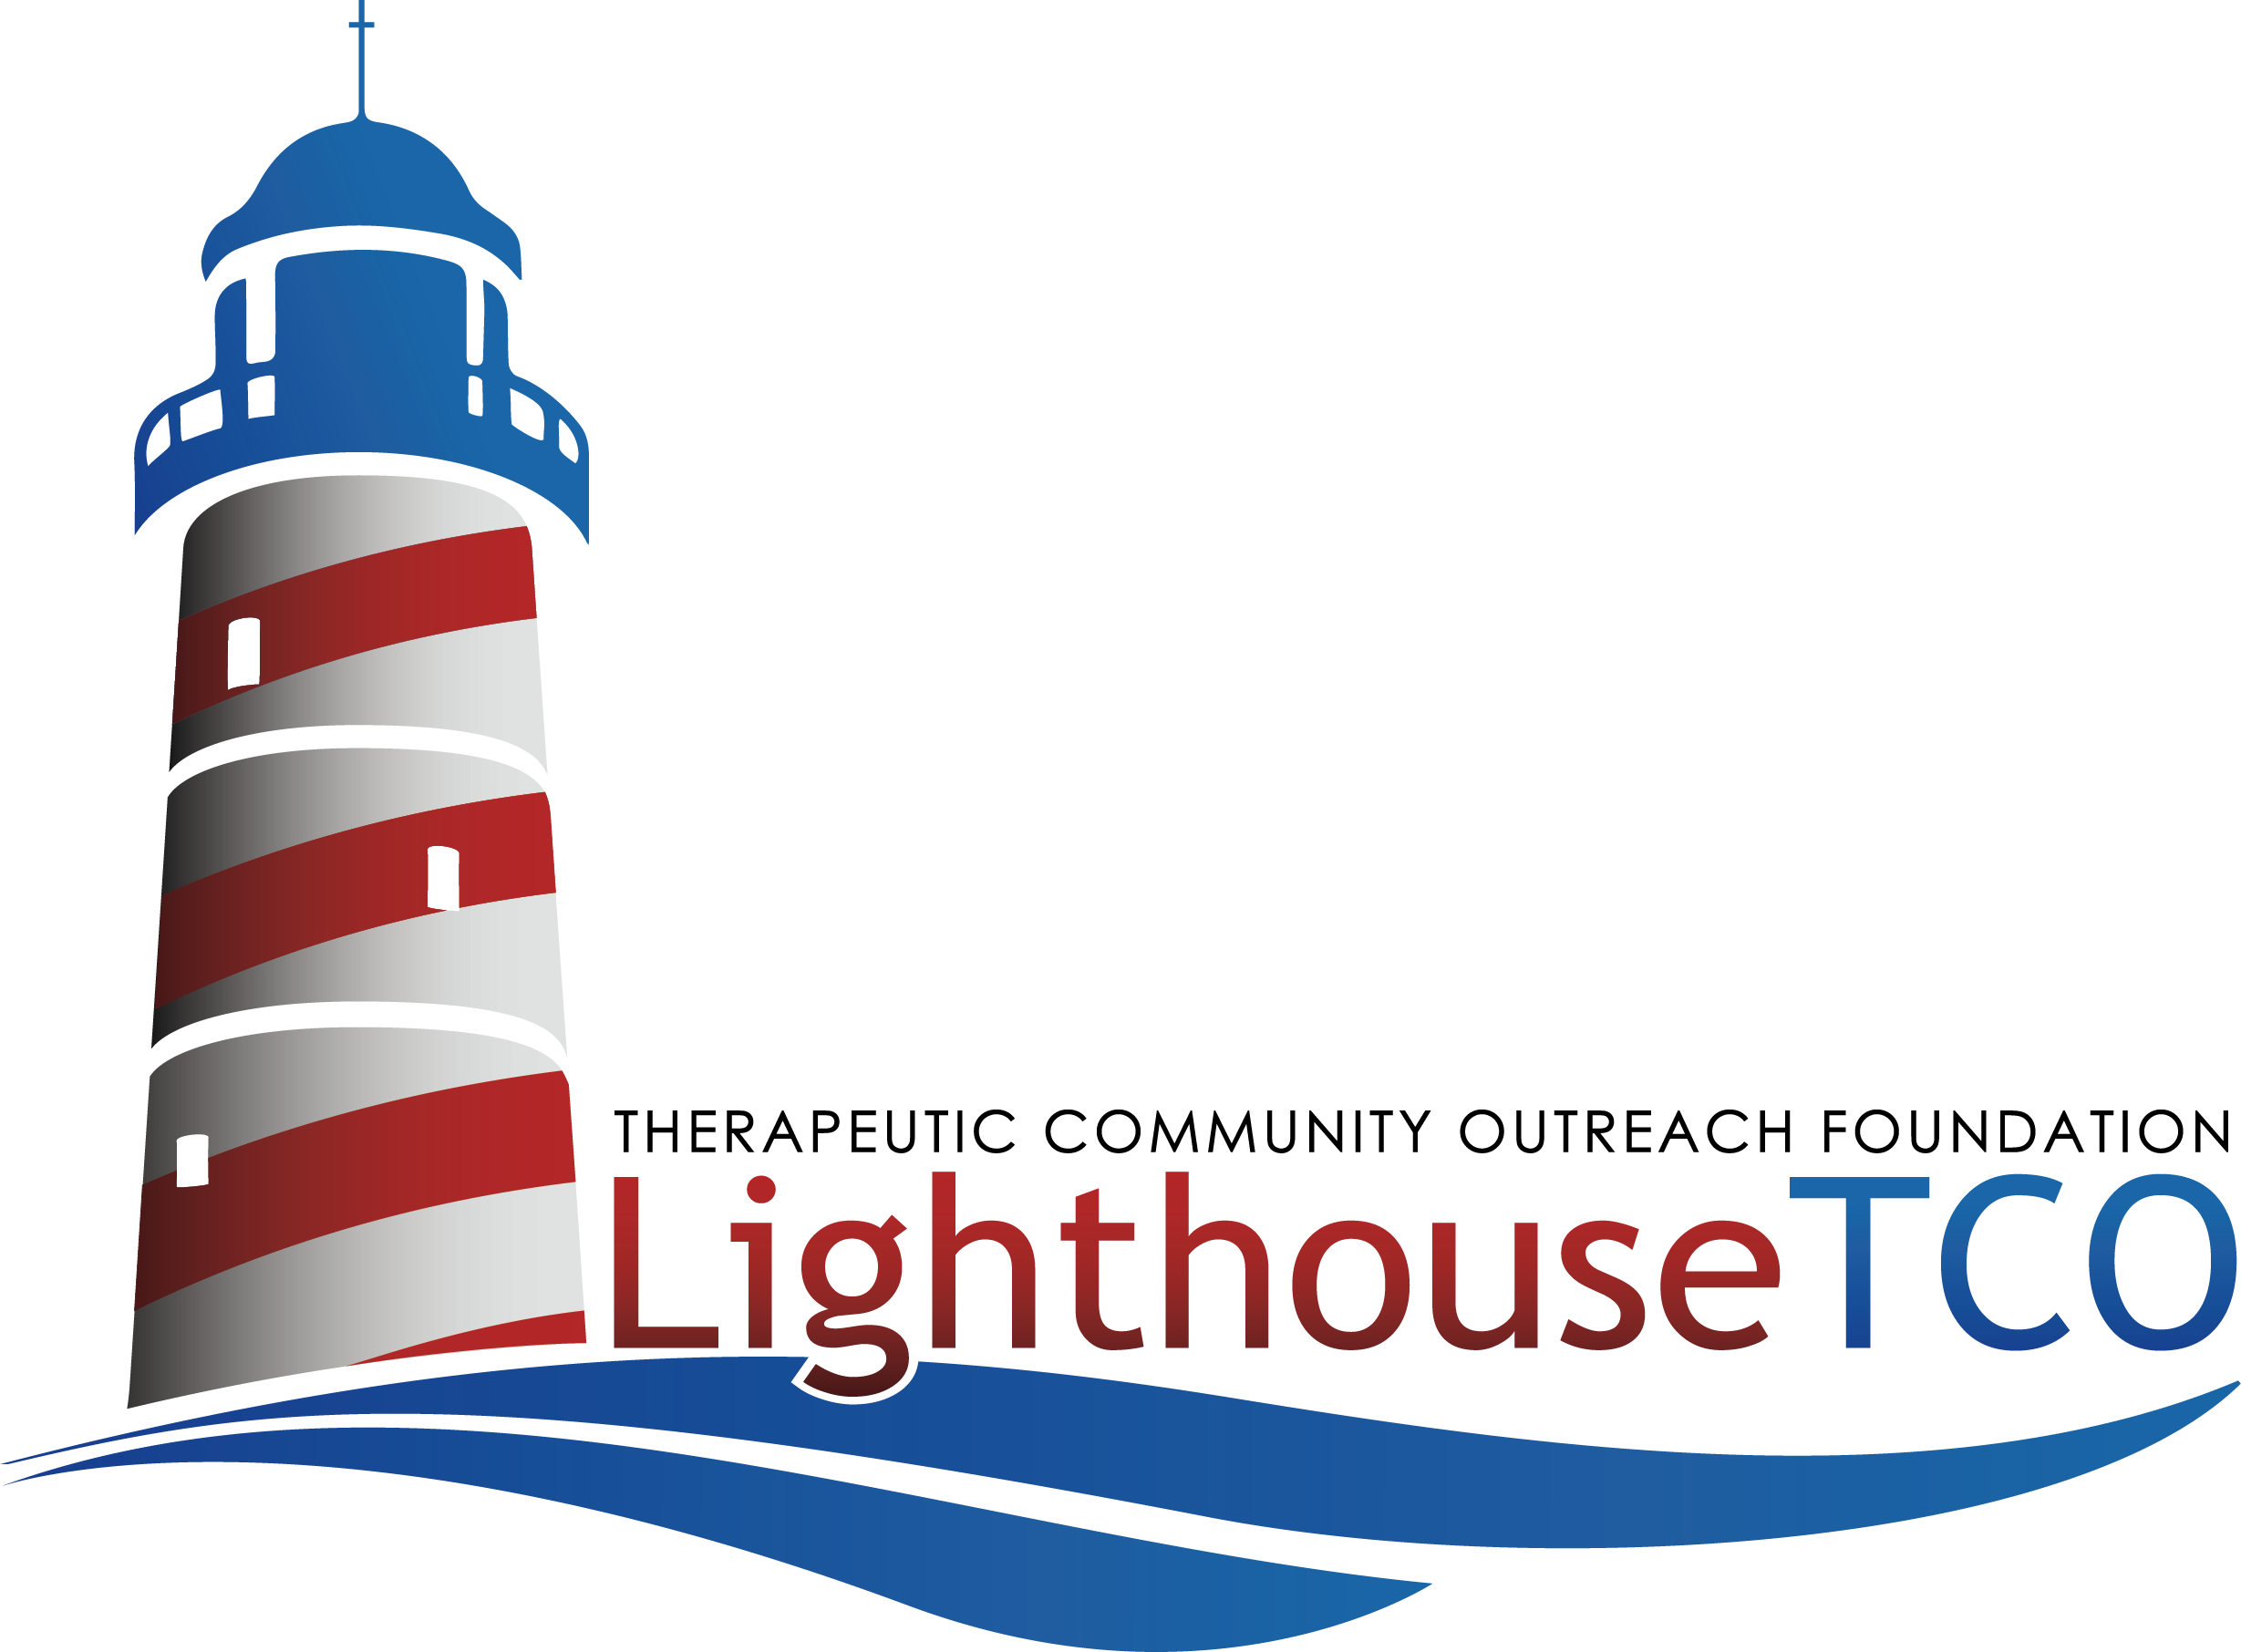 lighthouse image, white with red horizontal stripes and blue top; red and blue lettering